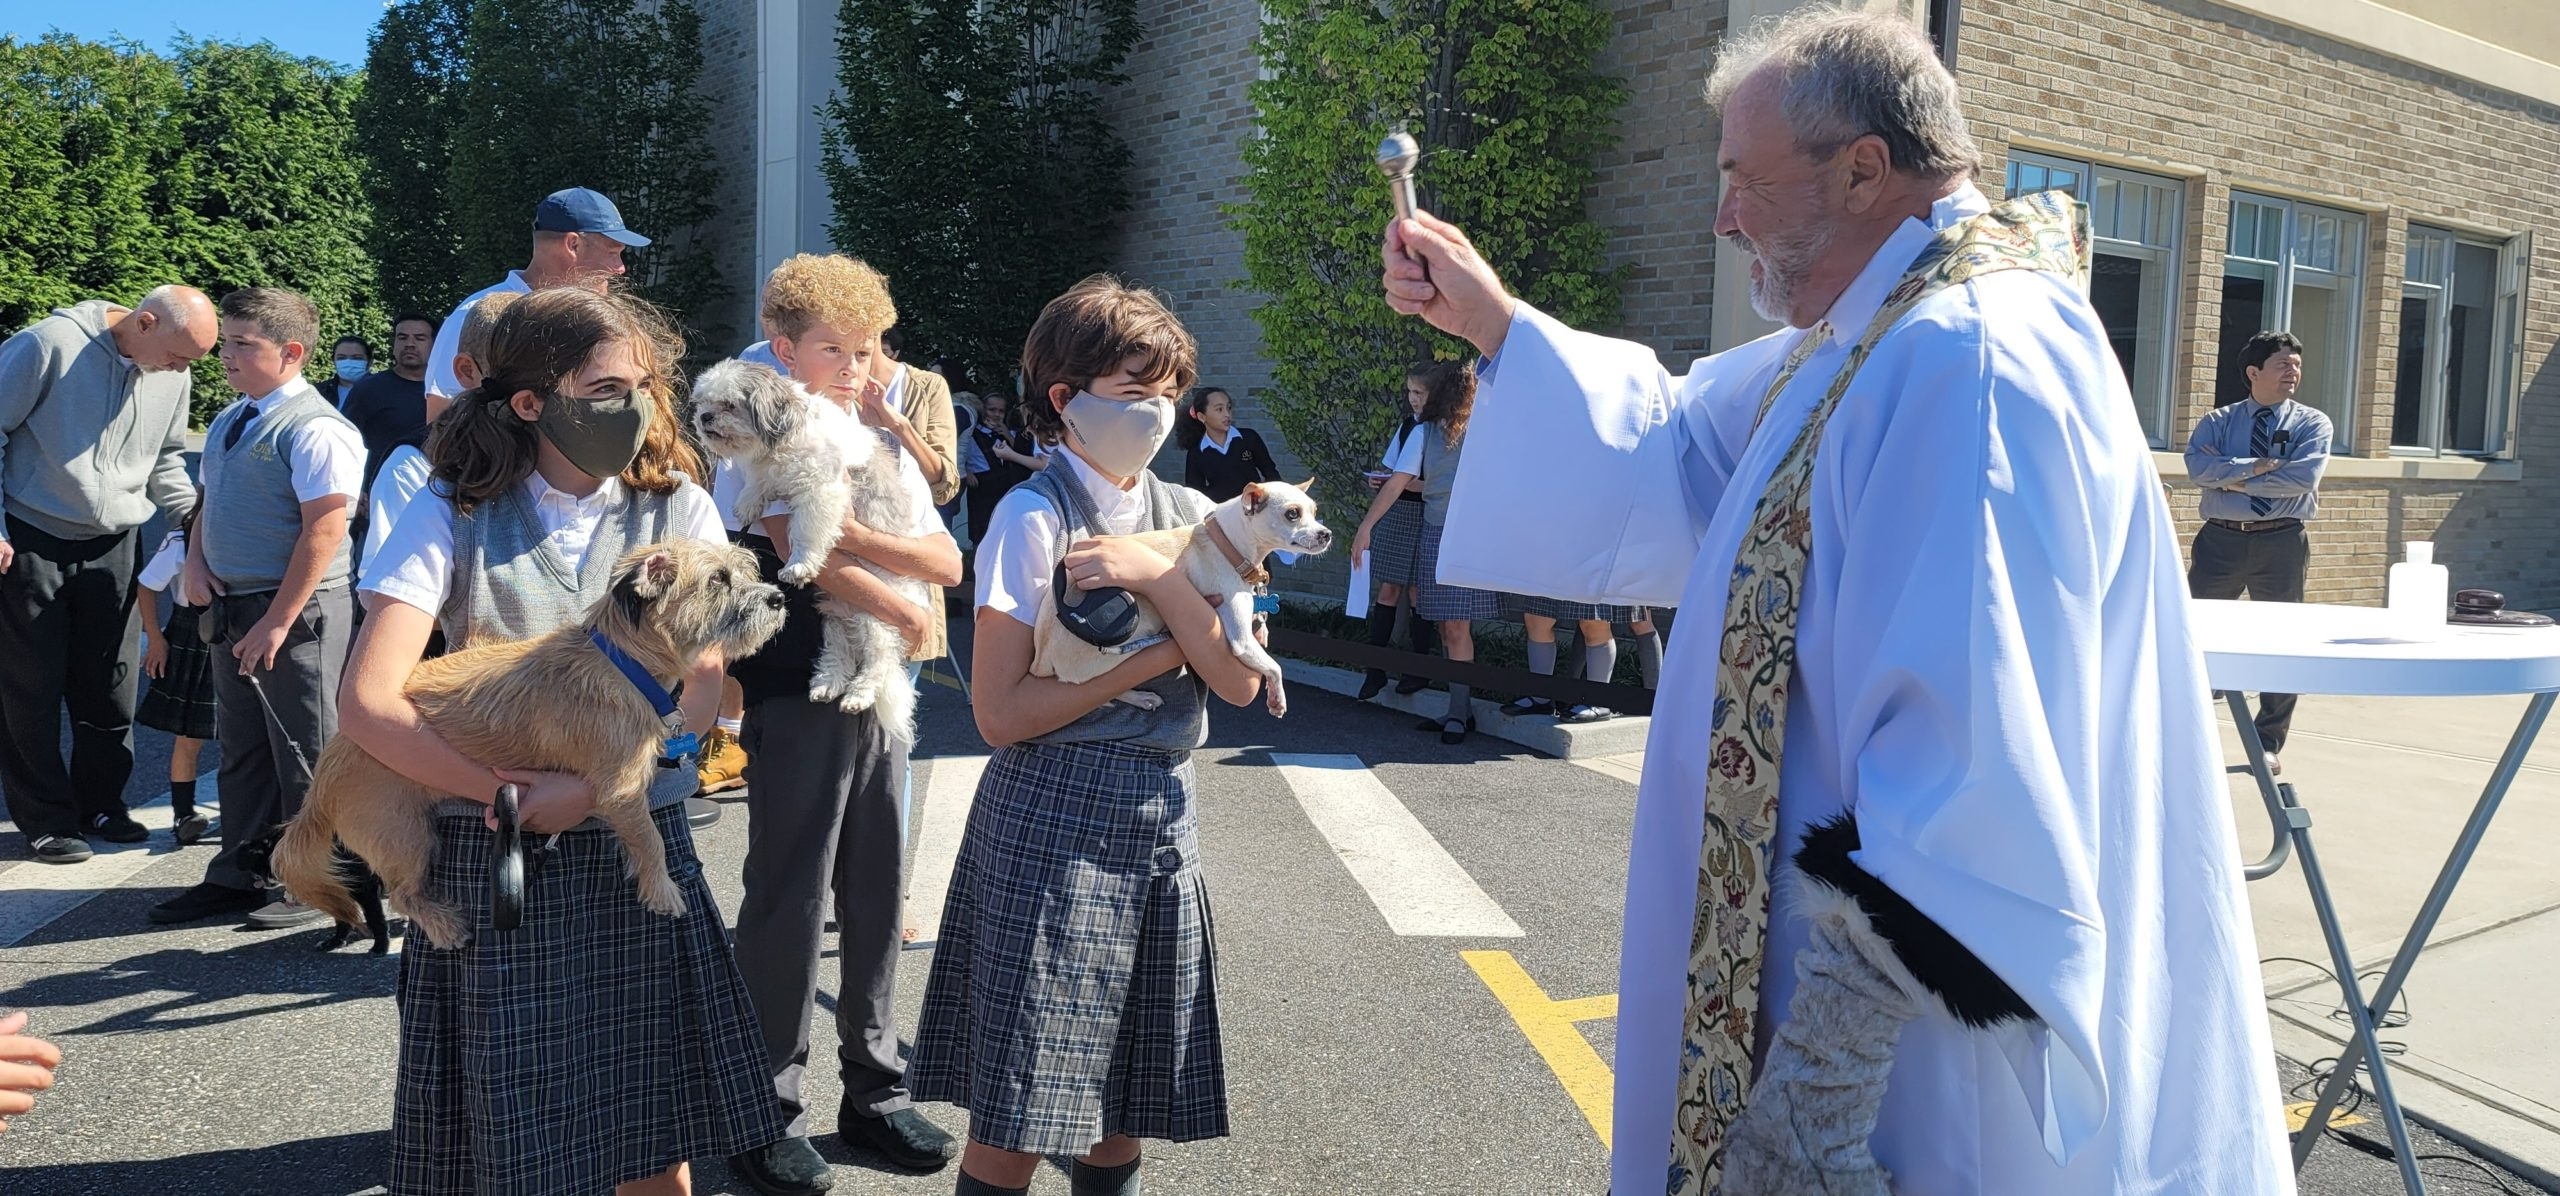 Our Lady of the Hamptons students Emma and LucyTillotson and Brian Spellman bring their pets to to be blessed during the annual Blessing of the Animals.